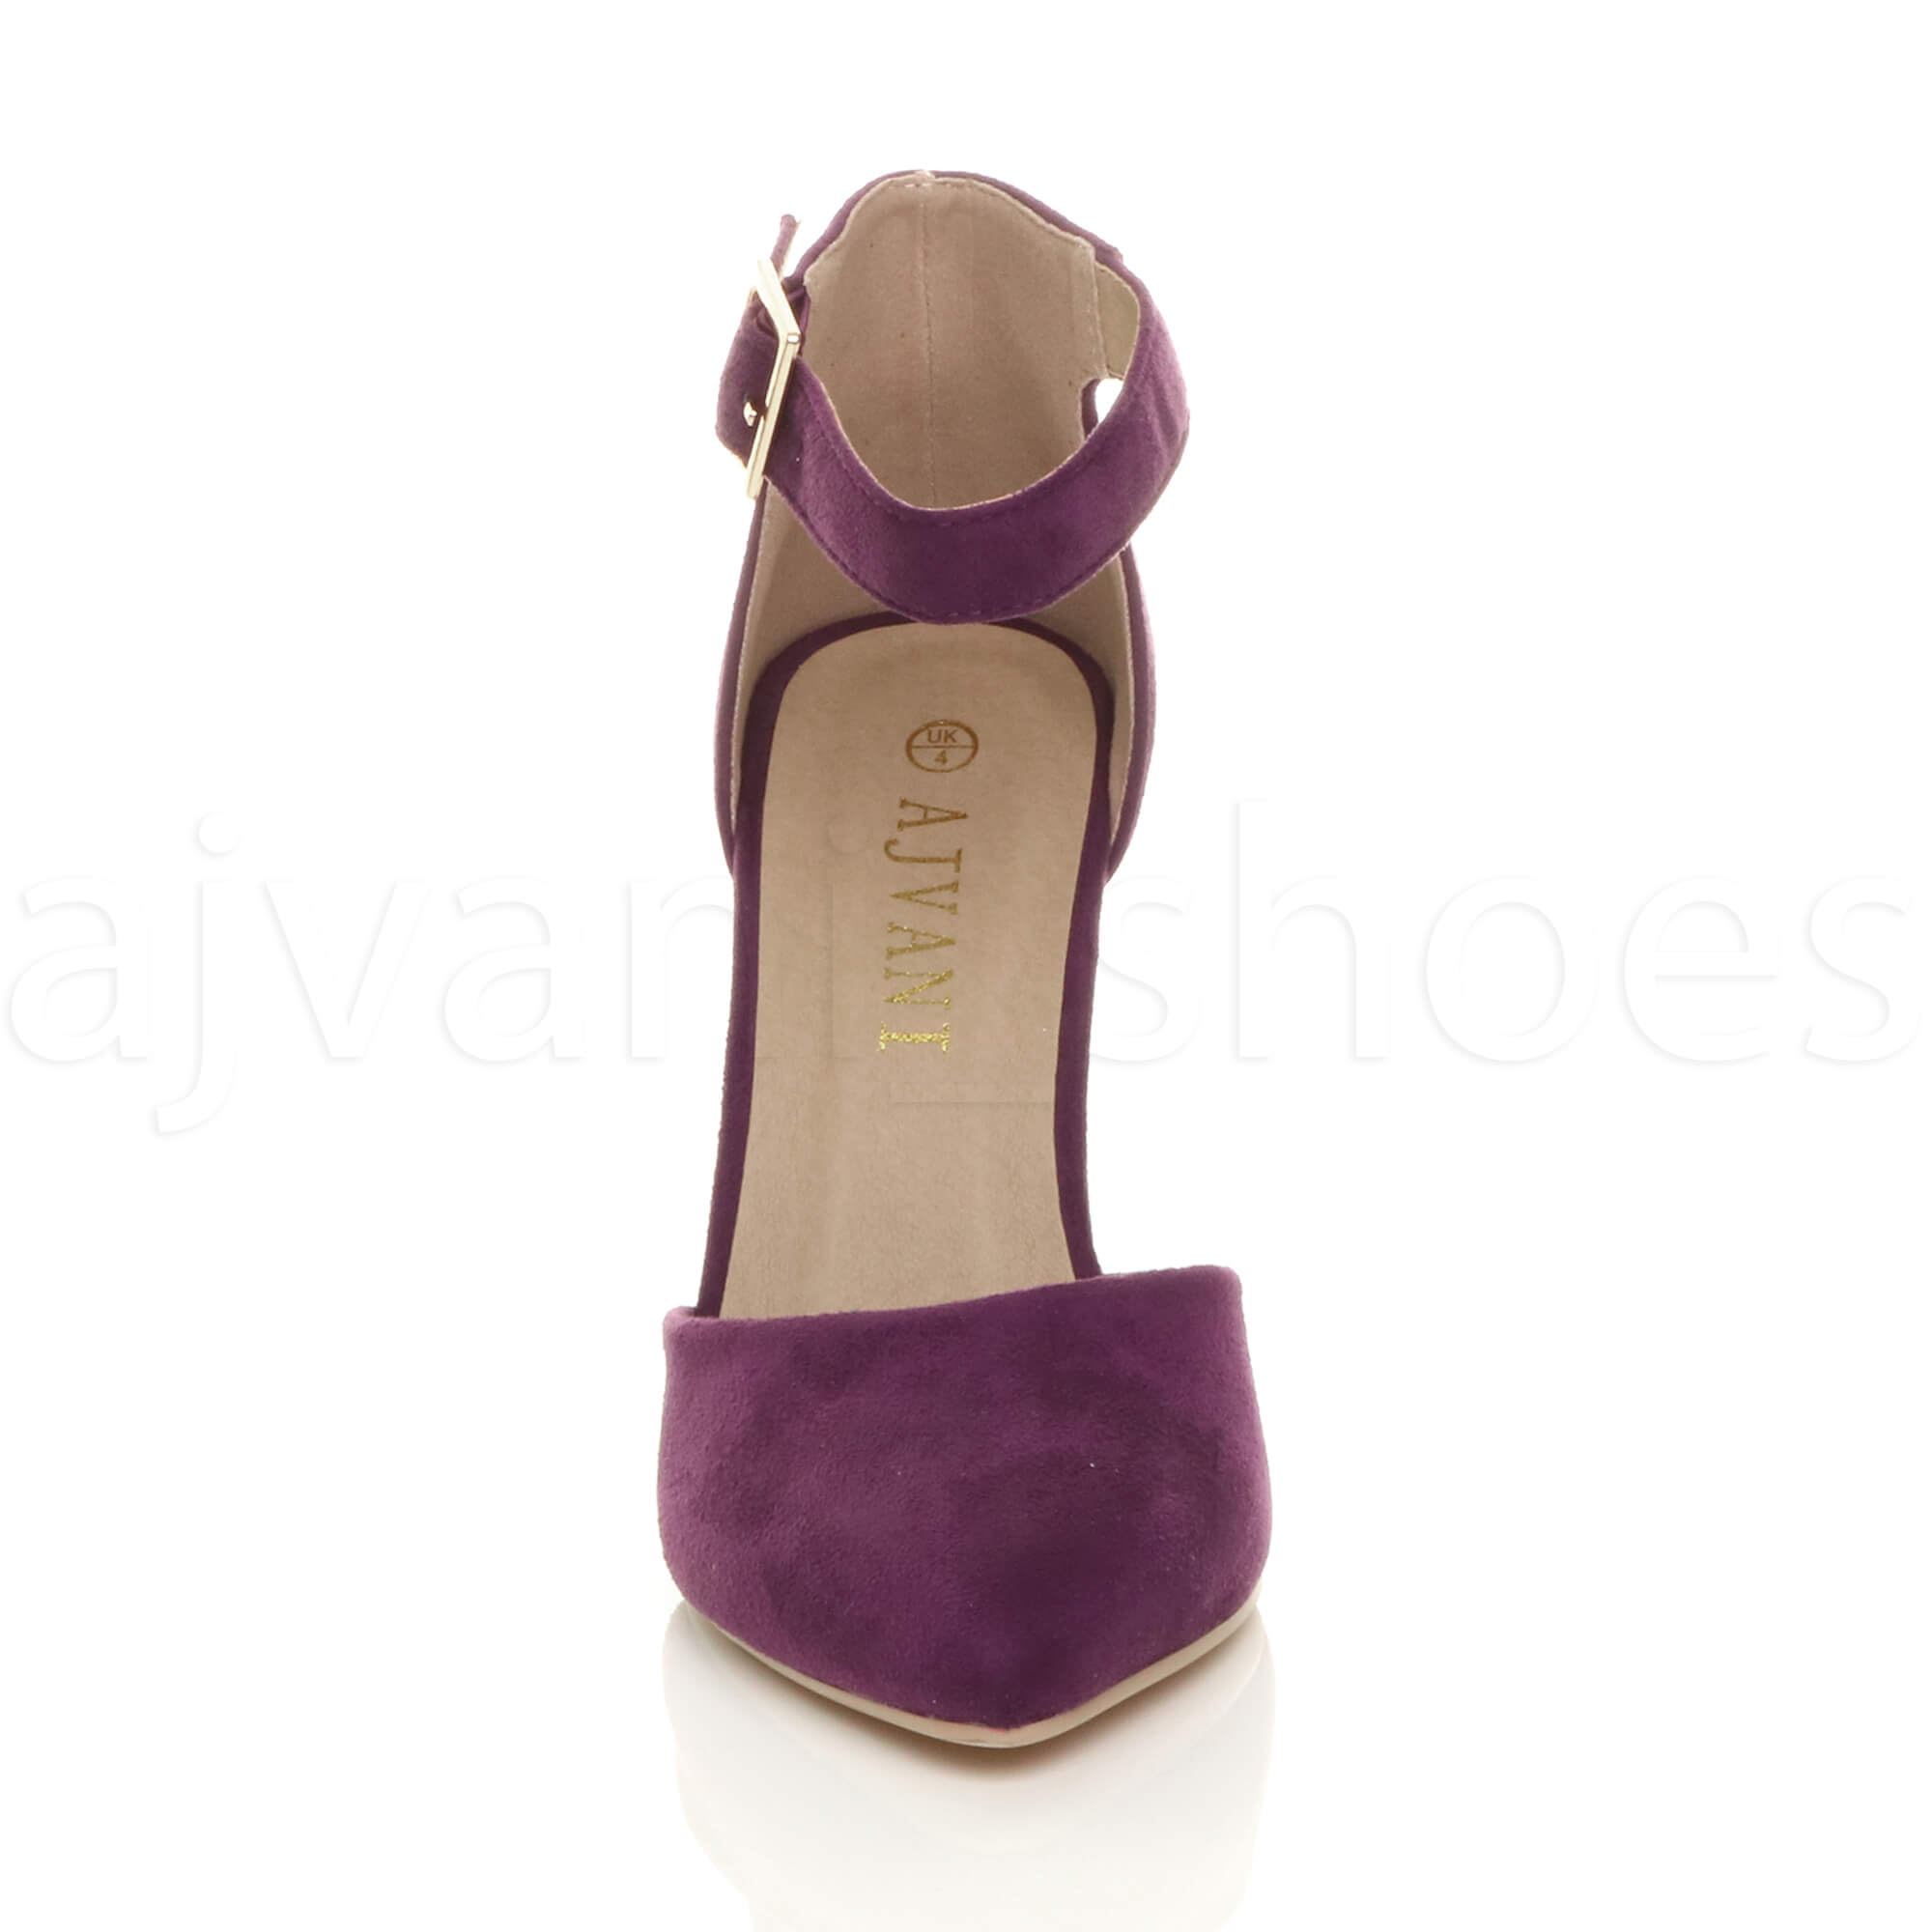 WOMENS-LADIES-HIGH-BLOCK-HEEL-ANKLE-STRAP-BUCKLE-POINTED-COURT-SHOES-SIZE thumbnail 125